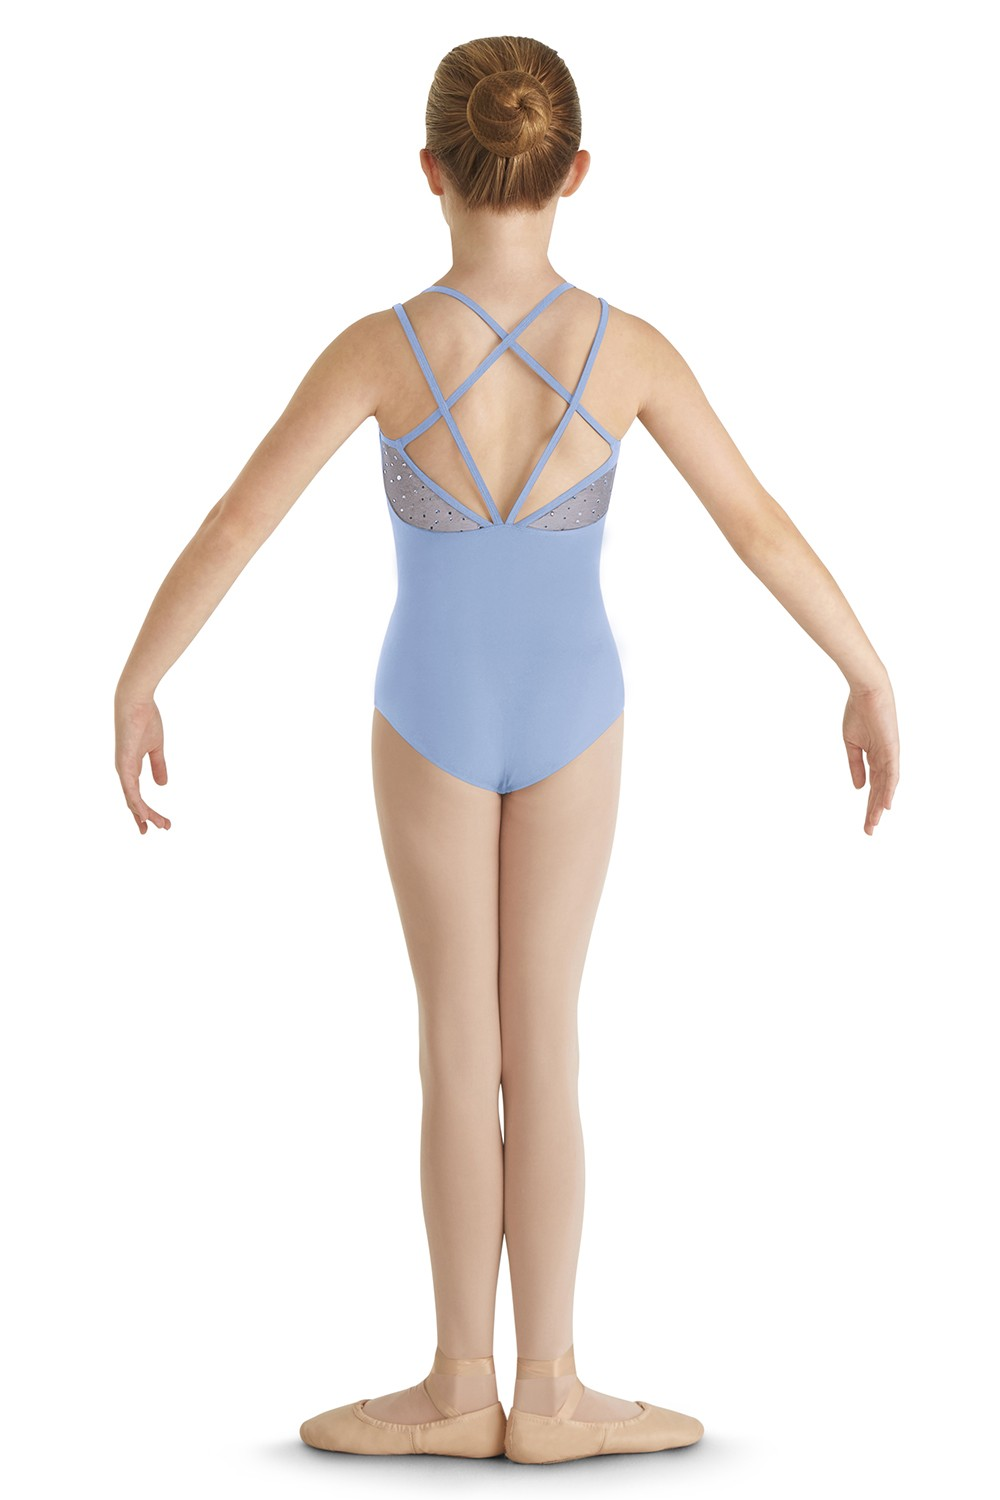 X Back Camisole Leotard Girls Camisole Leotards